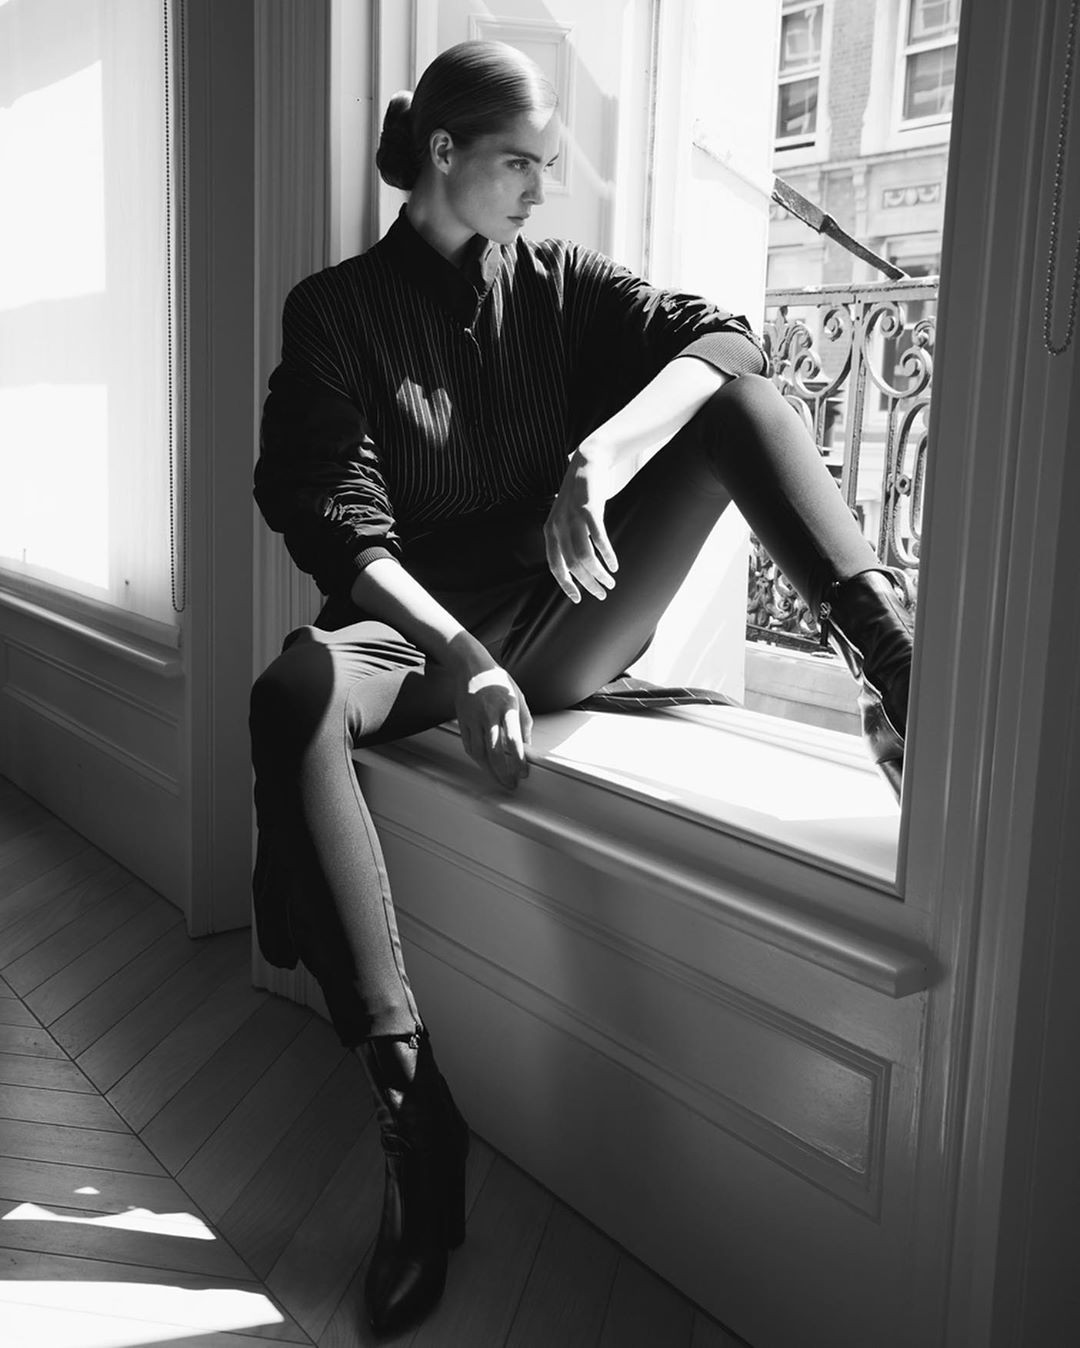 alexina-graham-by-andreas-ortner